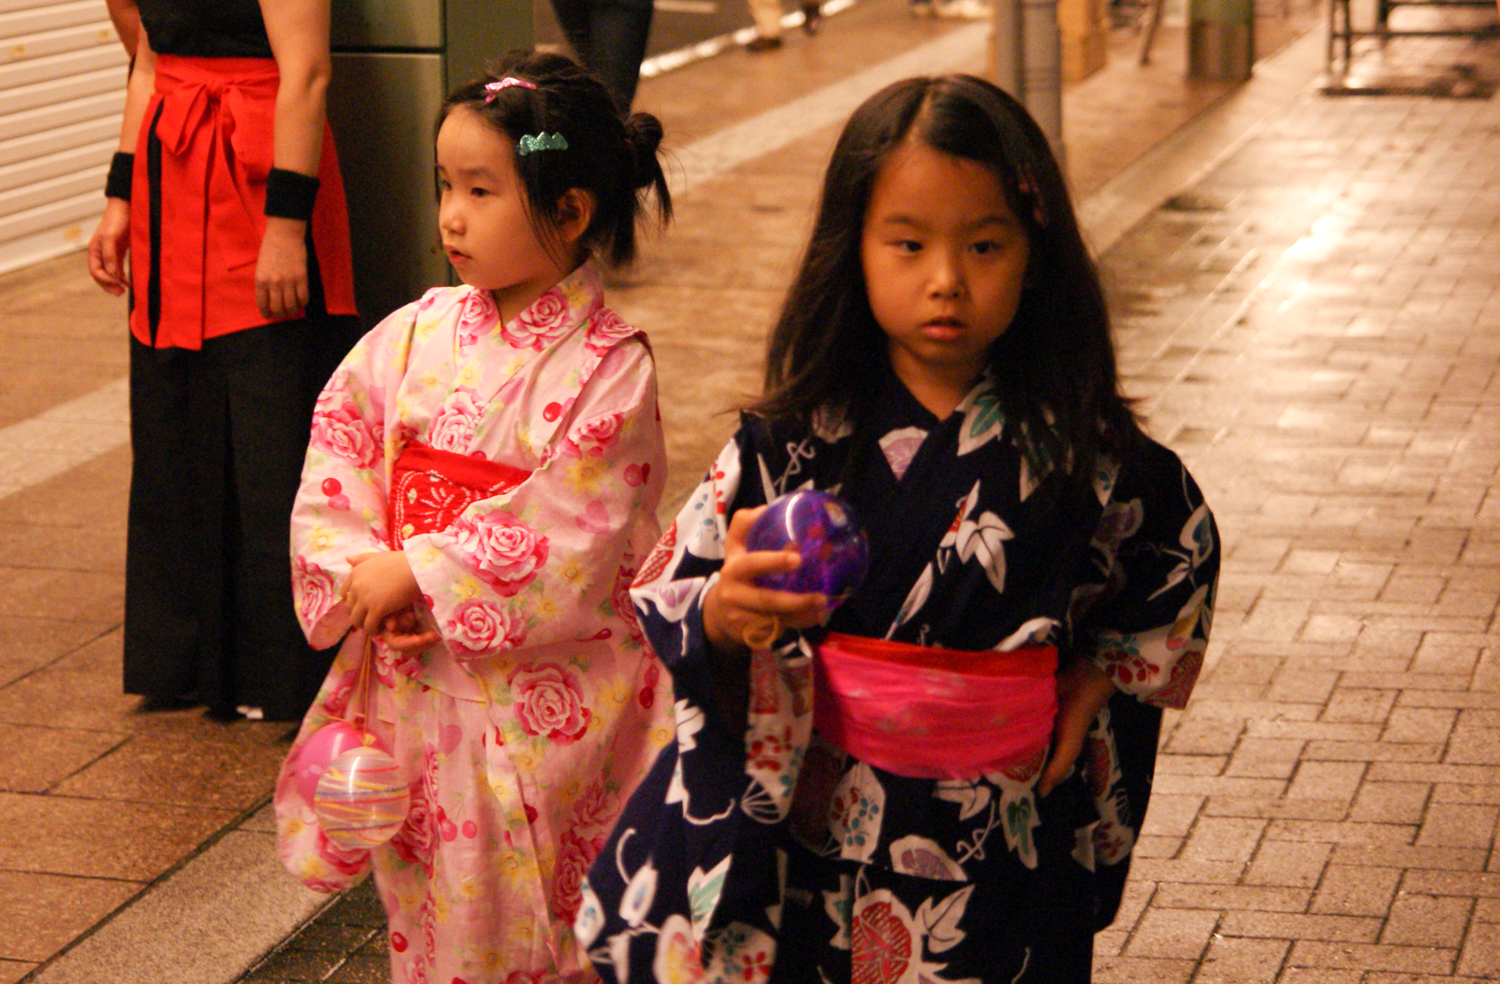 Young girls in kimonos